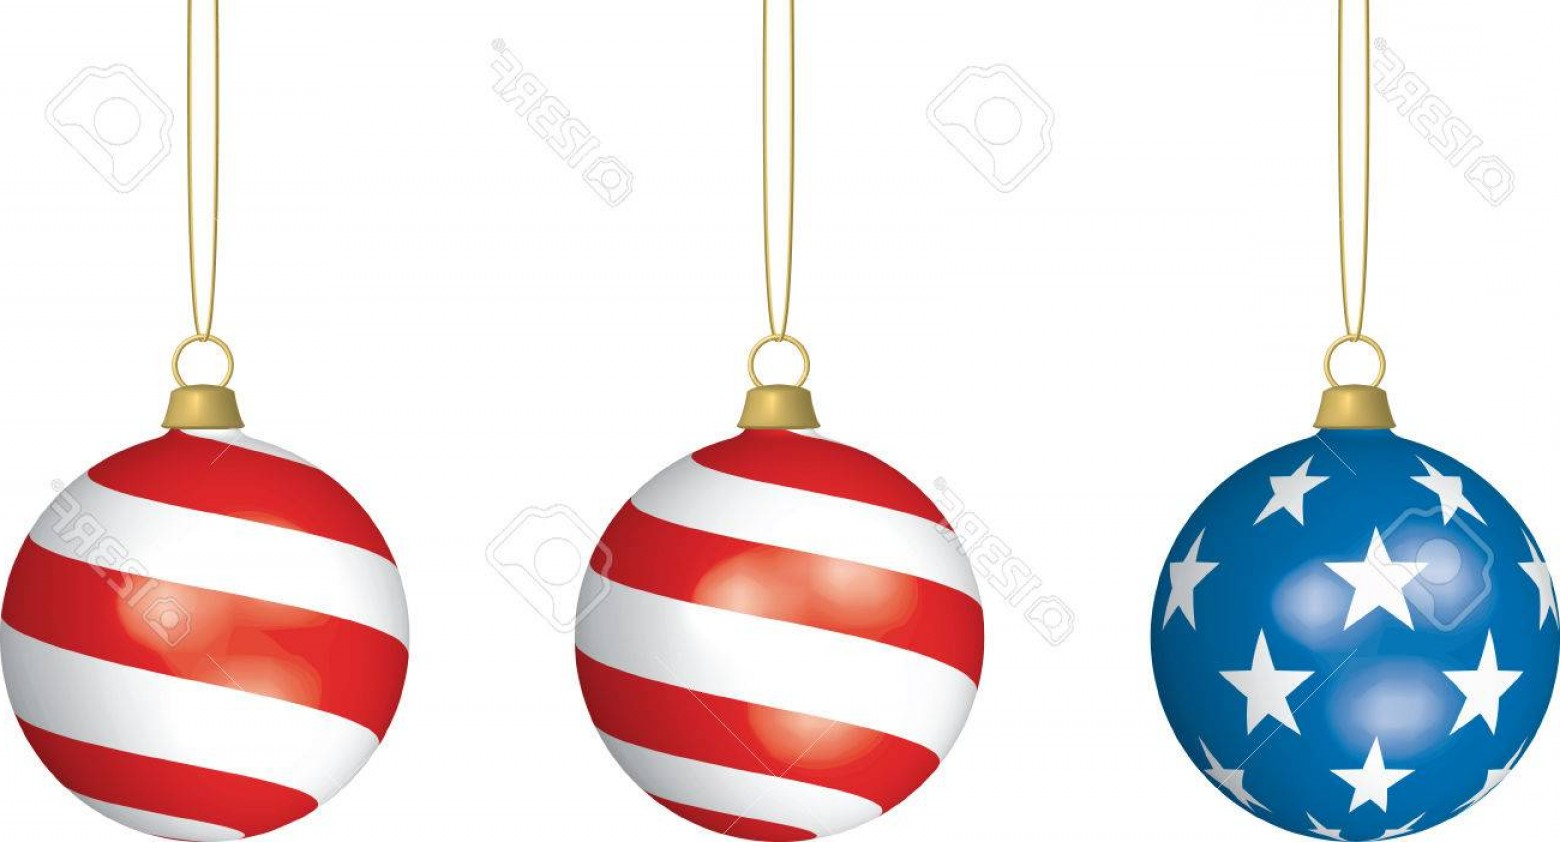 3 Glass Christmas Bulb Vector: Photod Illustration Of Three American Flag Themed Christmas Bulbs Hanging From Thin Strings On White Bac